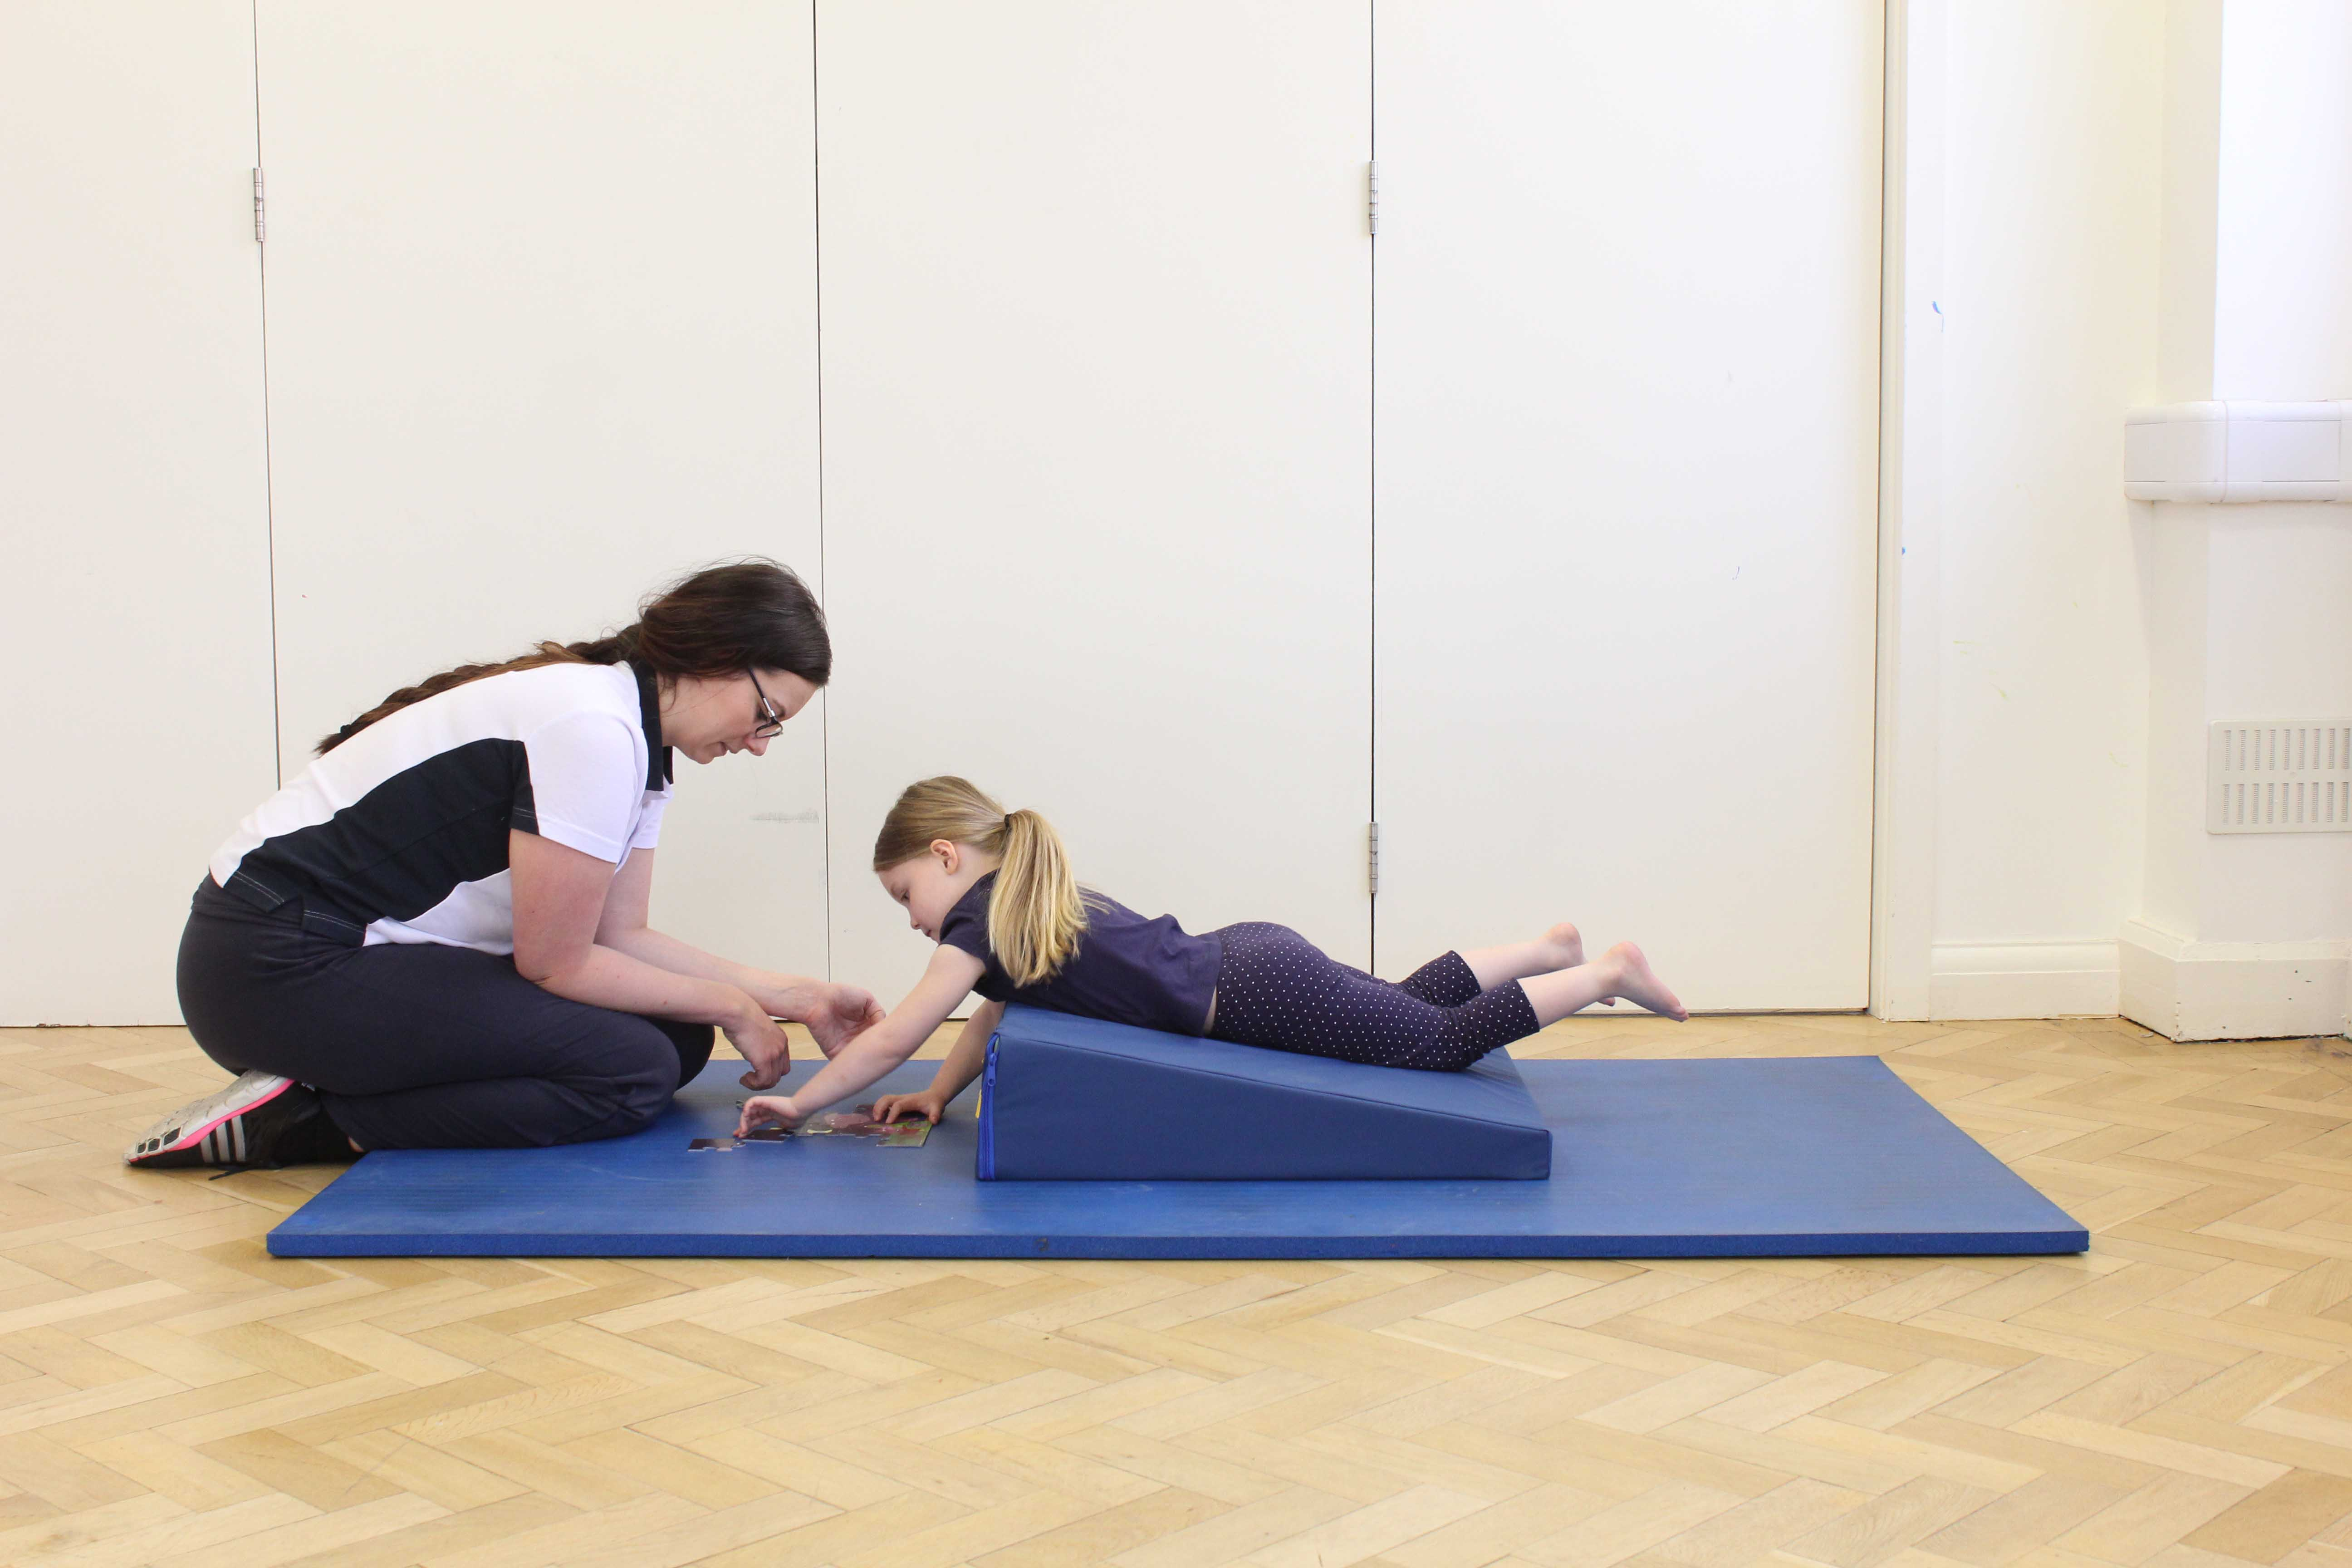 Functional rehabilitation exercises supervised by a specilaist physiotherapist